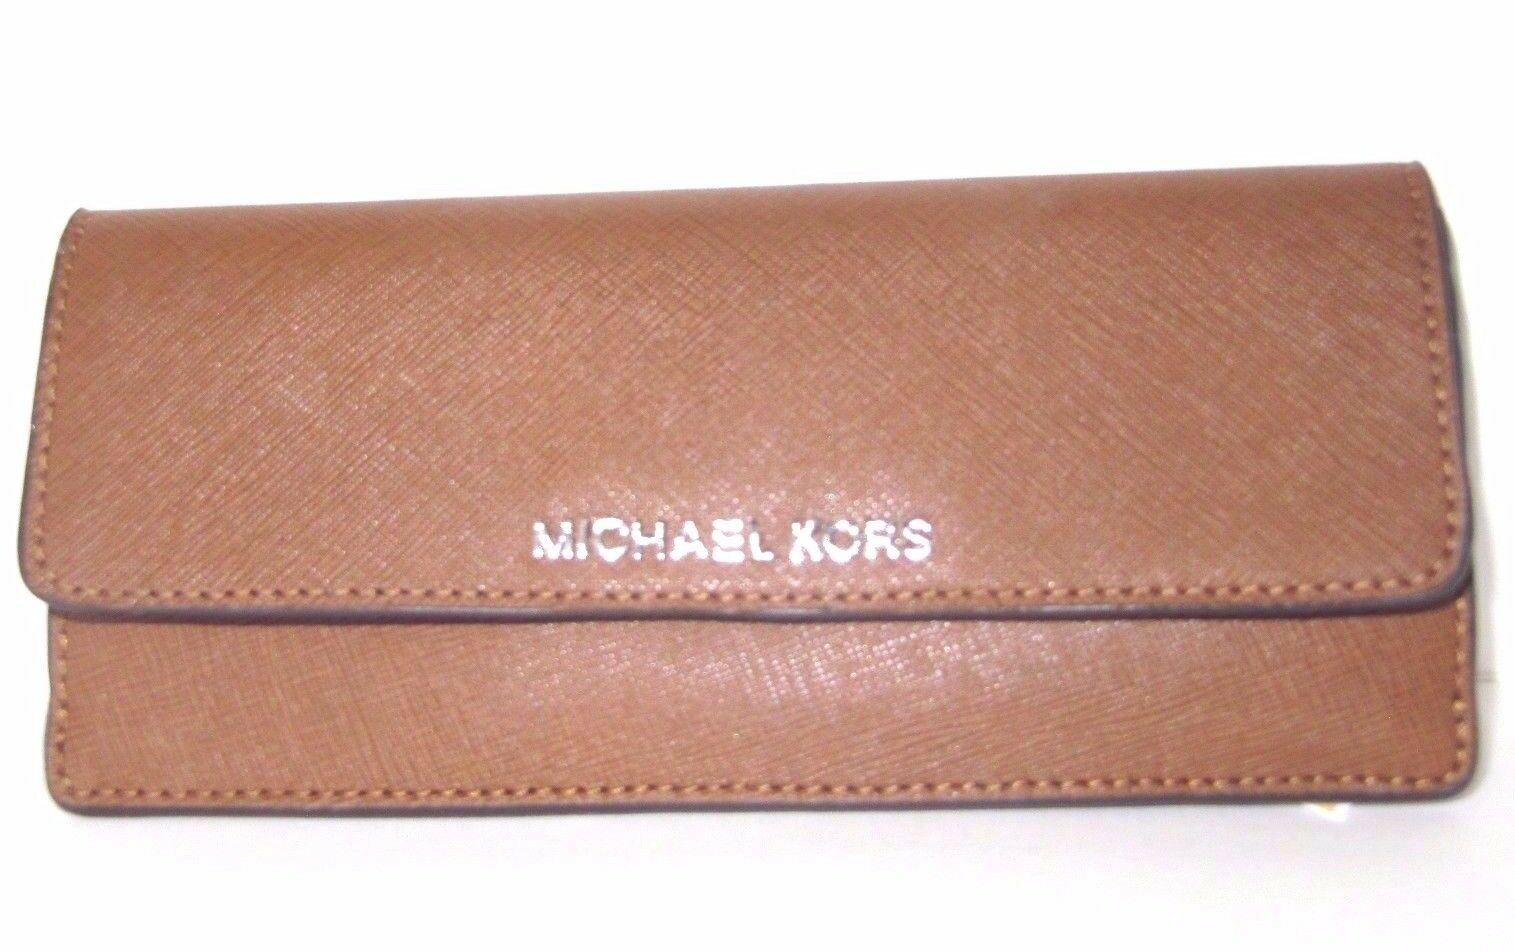 efc64c574ad1 Michael Kors Jet Set Travel Saffiano Leather Flat Wallet - Pick 1 ...